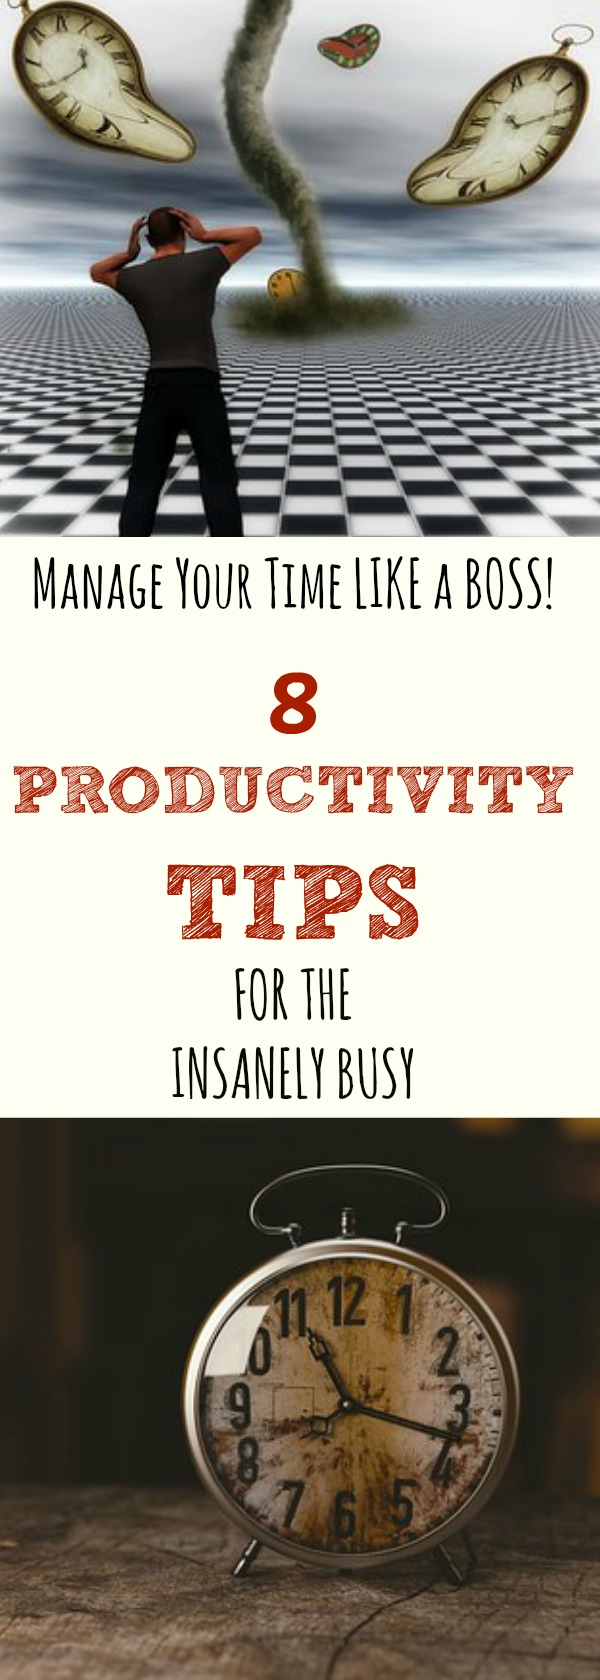 Here are some time management tips I have used for decades to get things done. Time blocking, batching, scheduling...do these really work? If you are CRAZY busy, here are some things you can do right now to become more productive and manage your time like a BOSS!